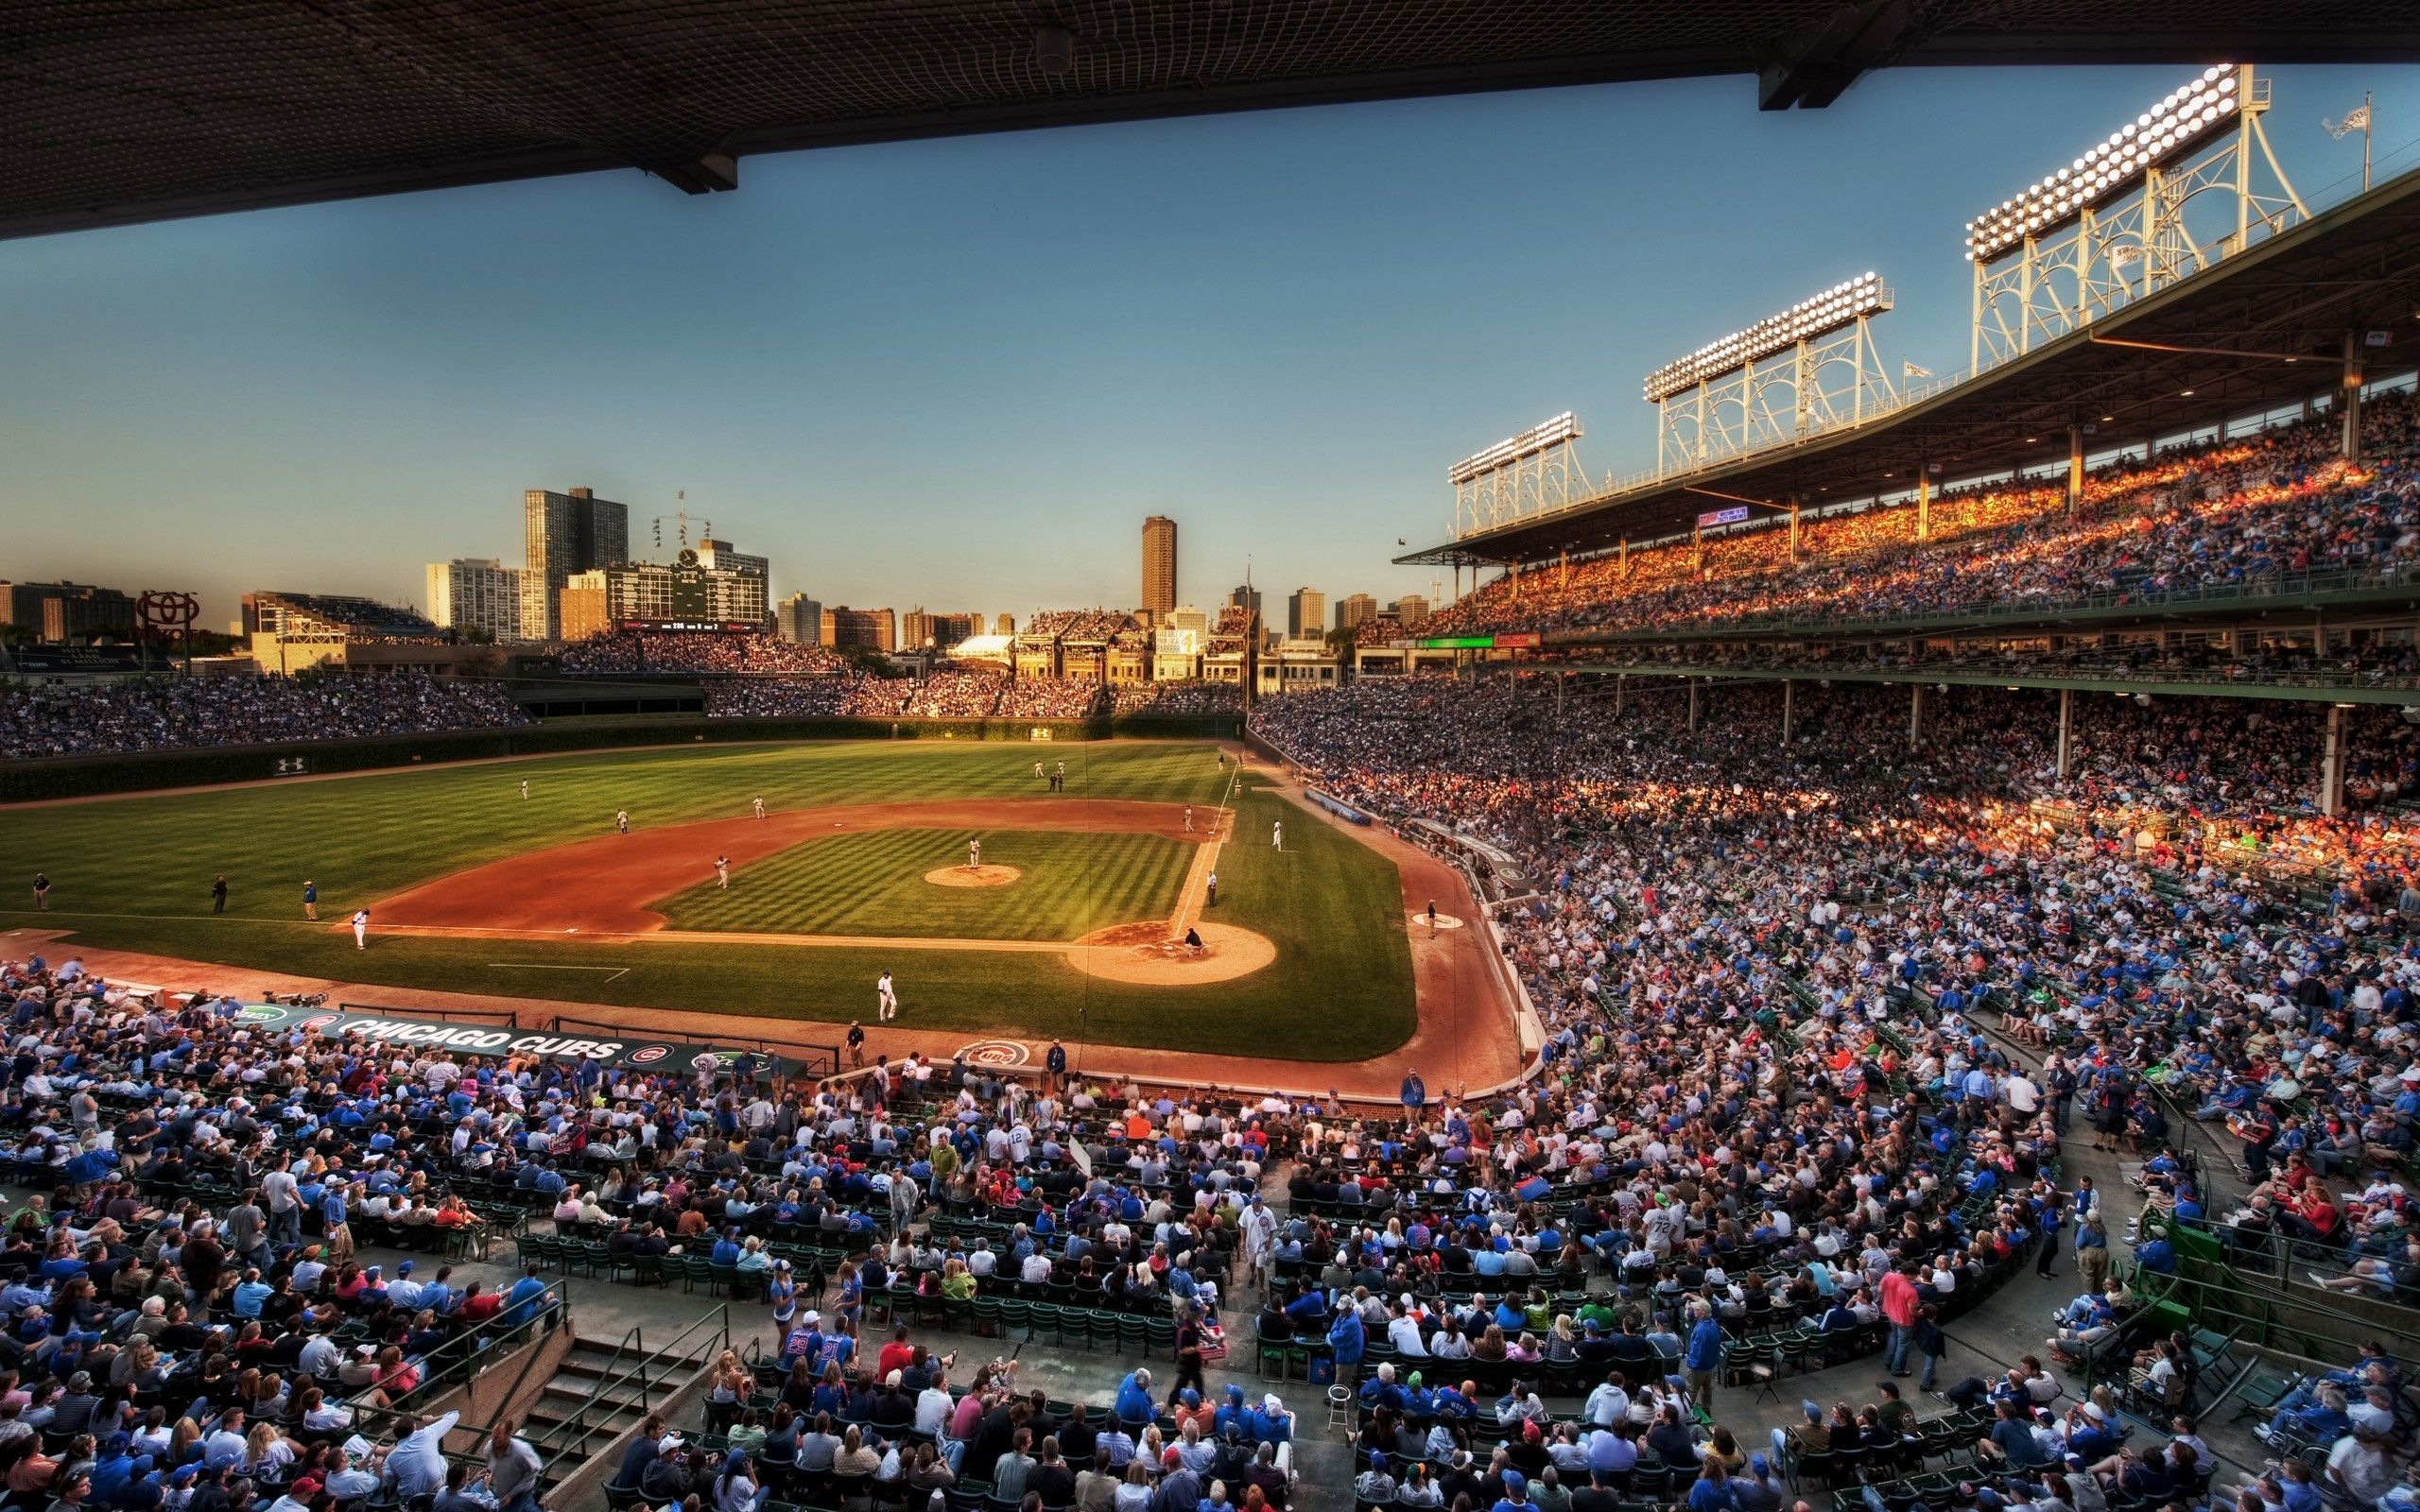 Simple Wallpaper Mac Chicago - 414036-chicago-cubs-wallpapers-2560x1600-macbook  Trends_29330.jpg